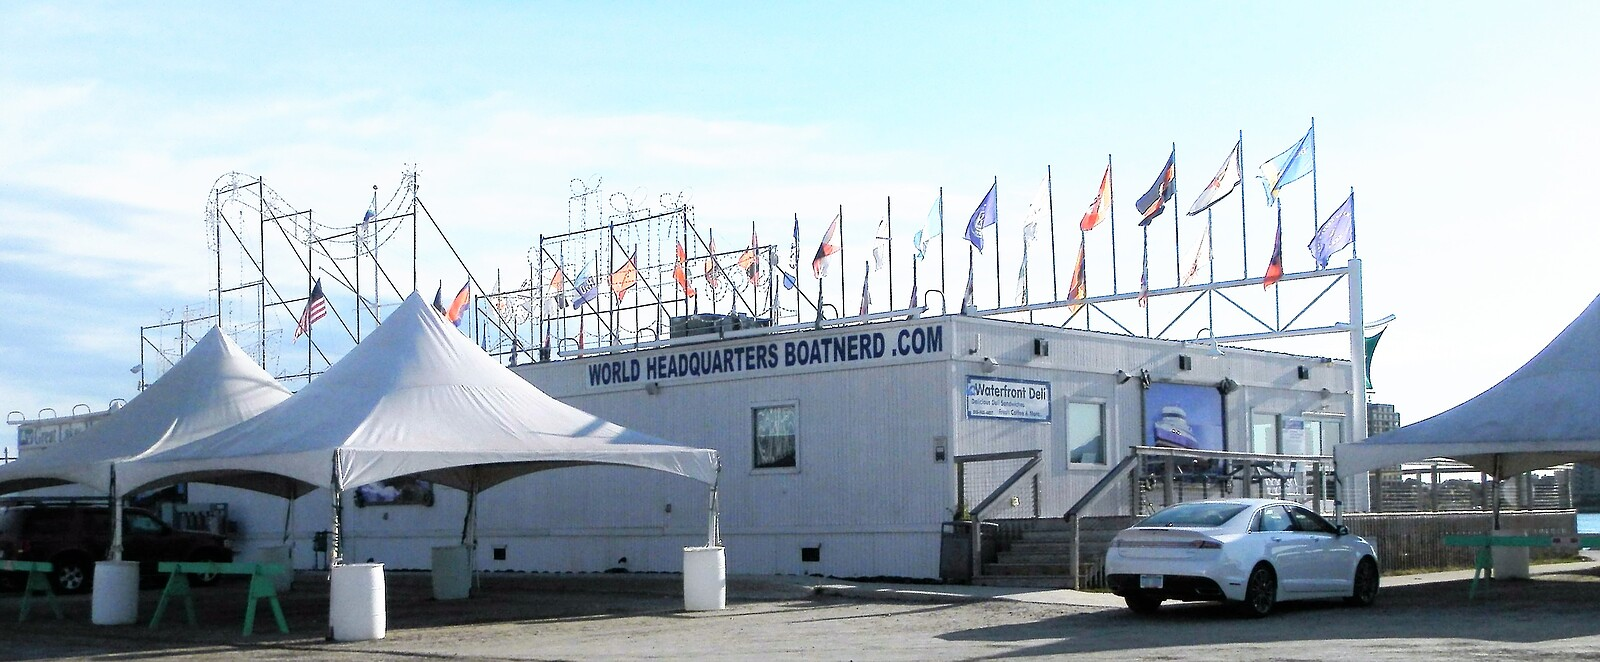 The Maritime Center is world headquarters for the Boat Nerd.